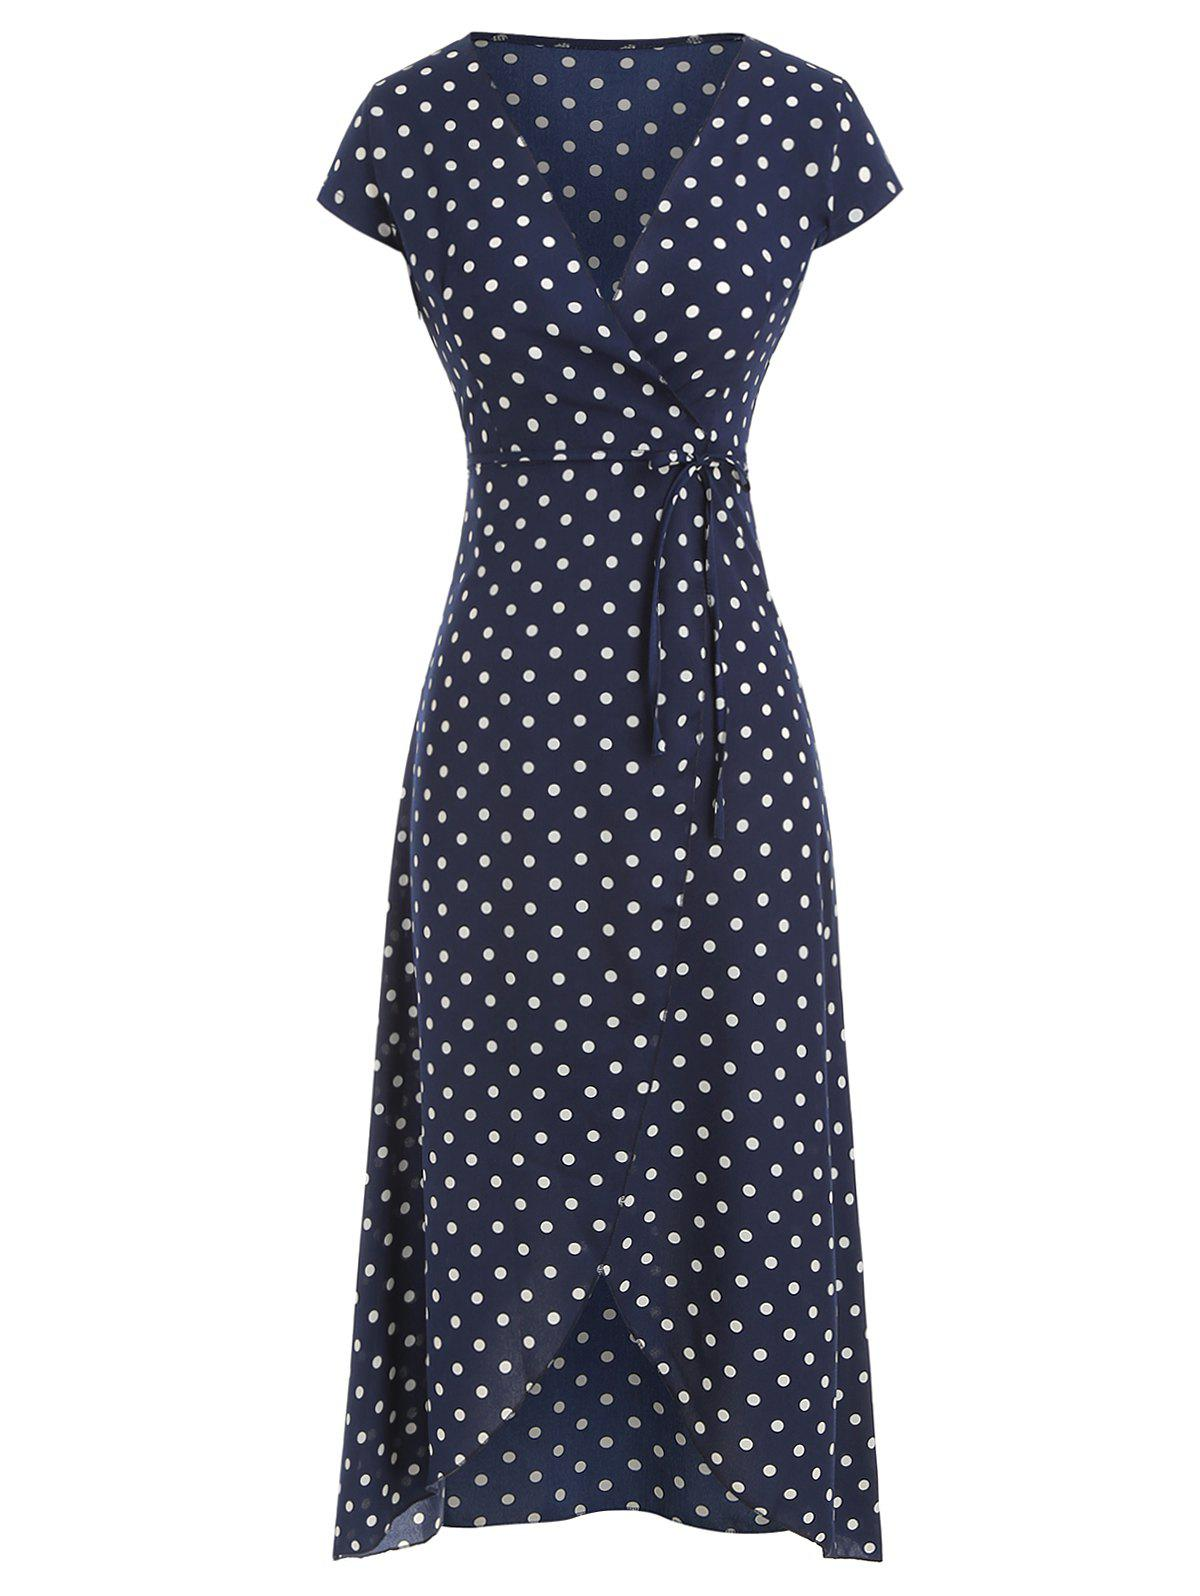 Chic Polka Dot Belted Overlap Dress